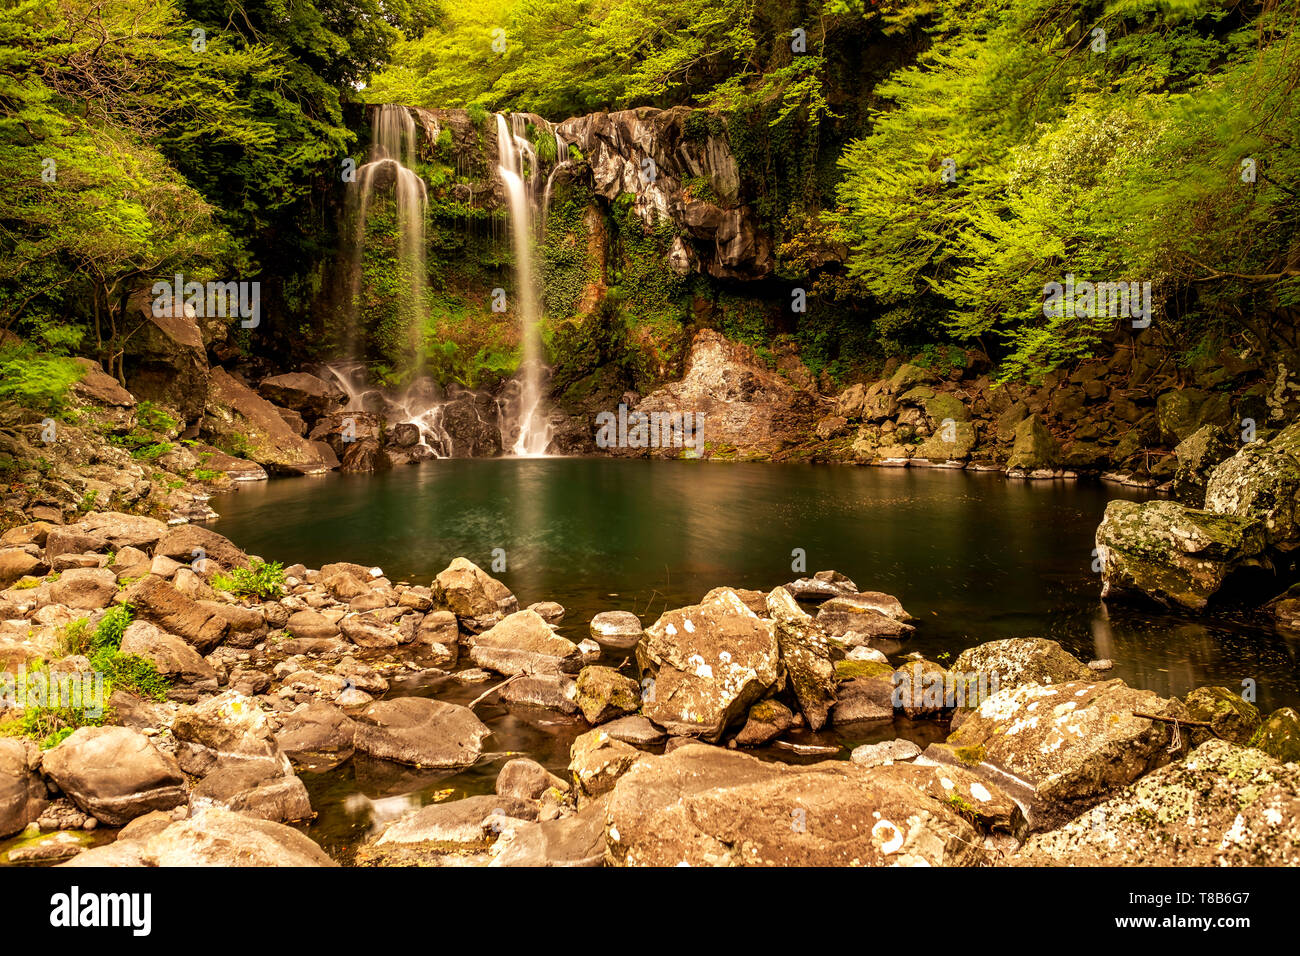 long exposure in the waterfall, Jeju, South Korea - Stock Image